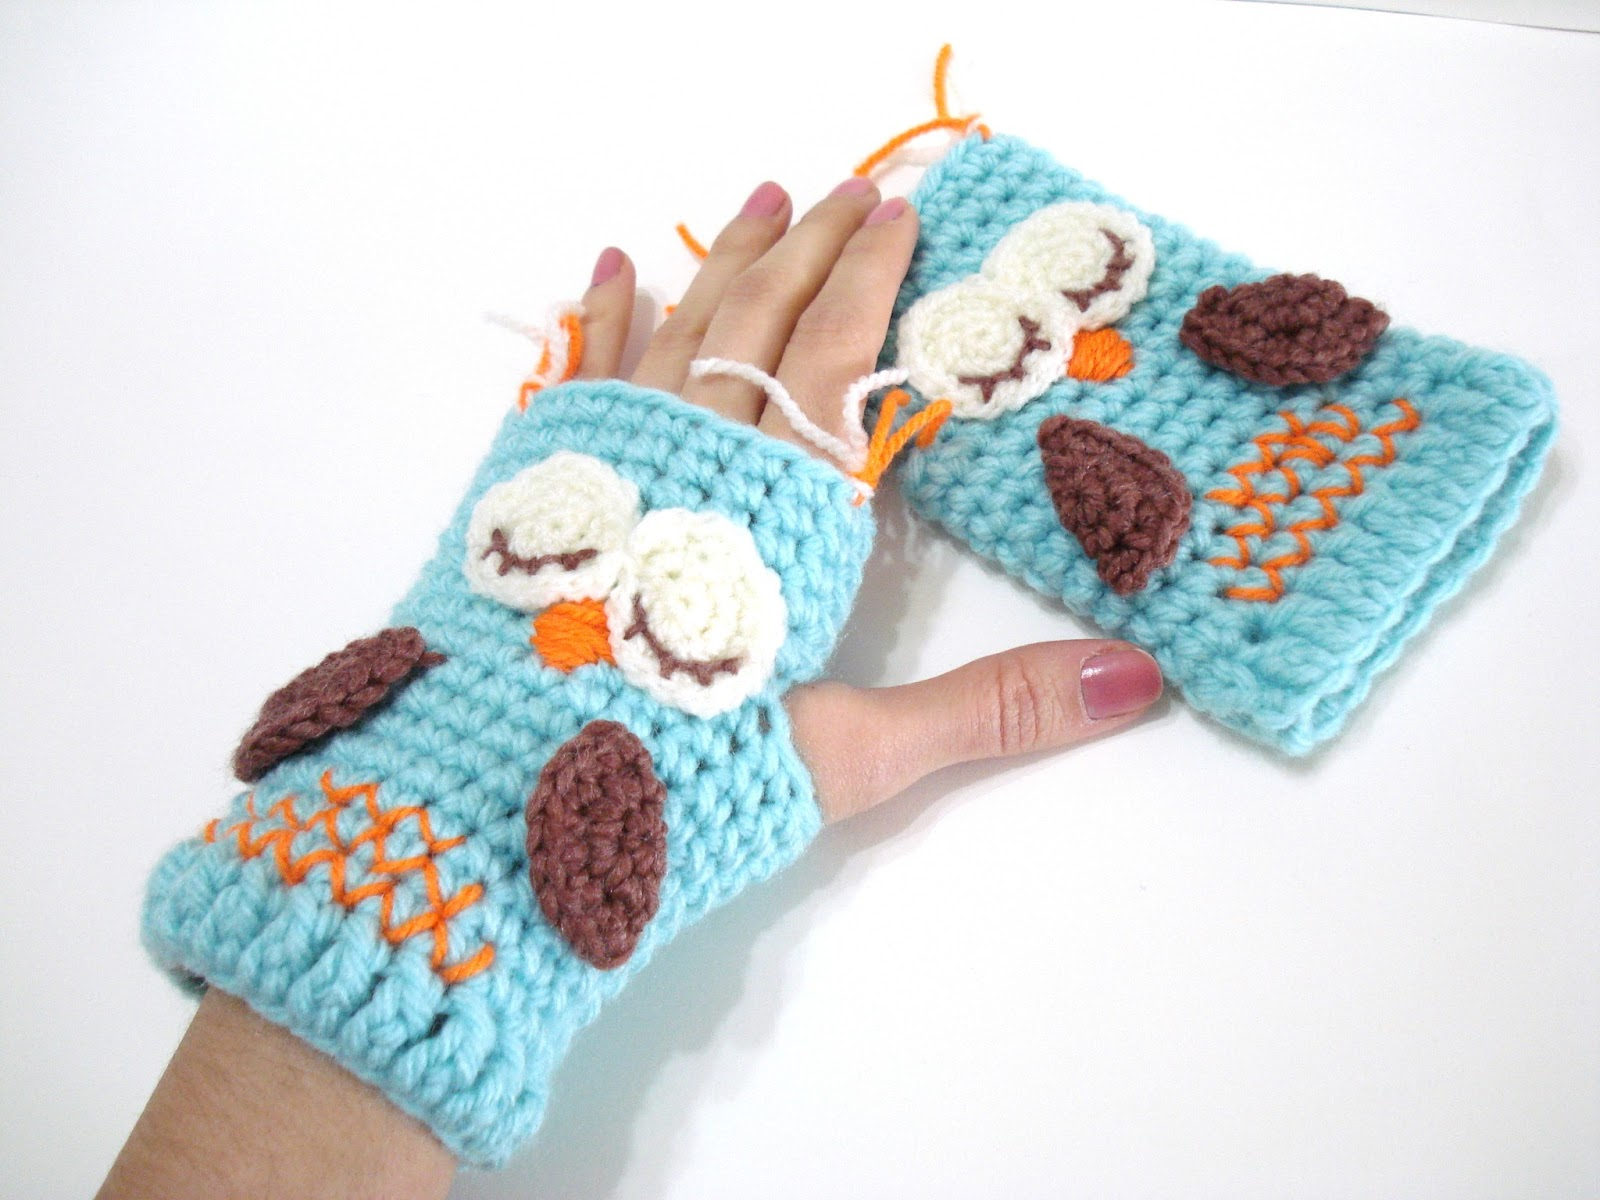 Crochet Tutorial Owl : ... Pattern, Owl Gloves Pattern, Tutorial, Crochet Tutorial, Owl Gloves